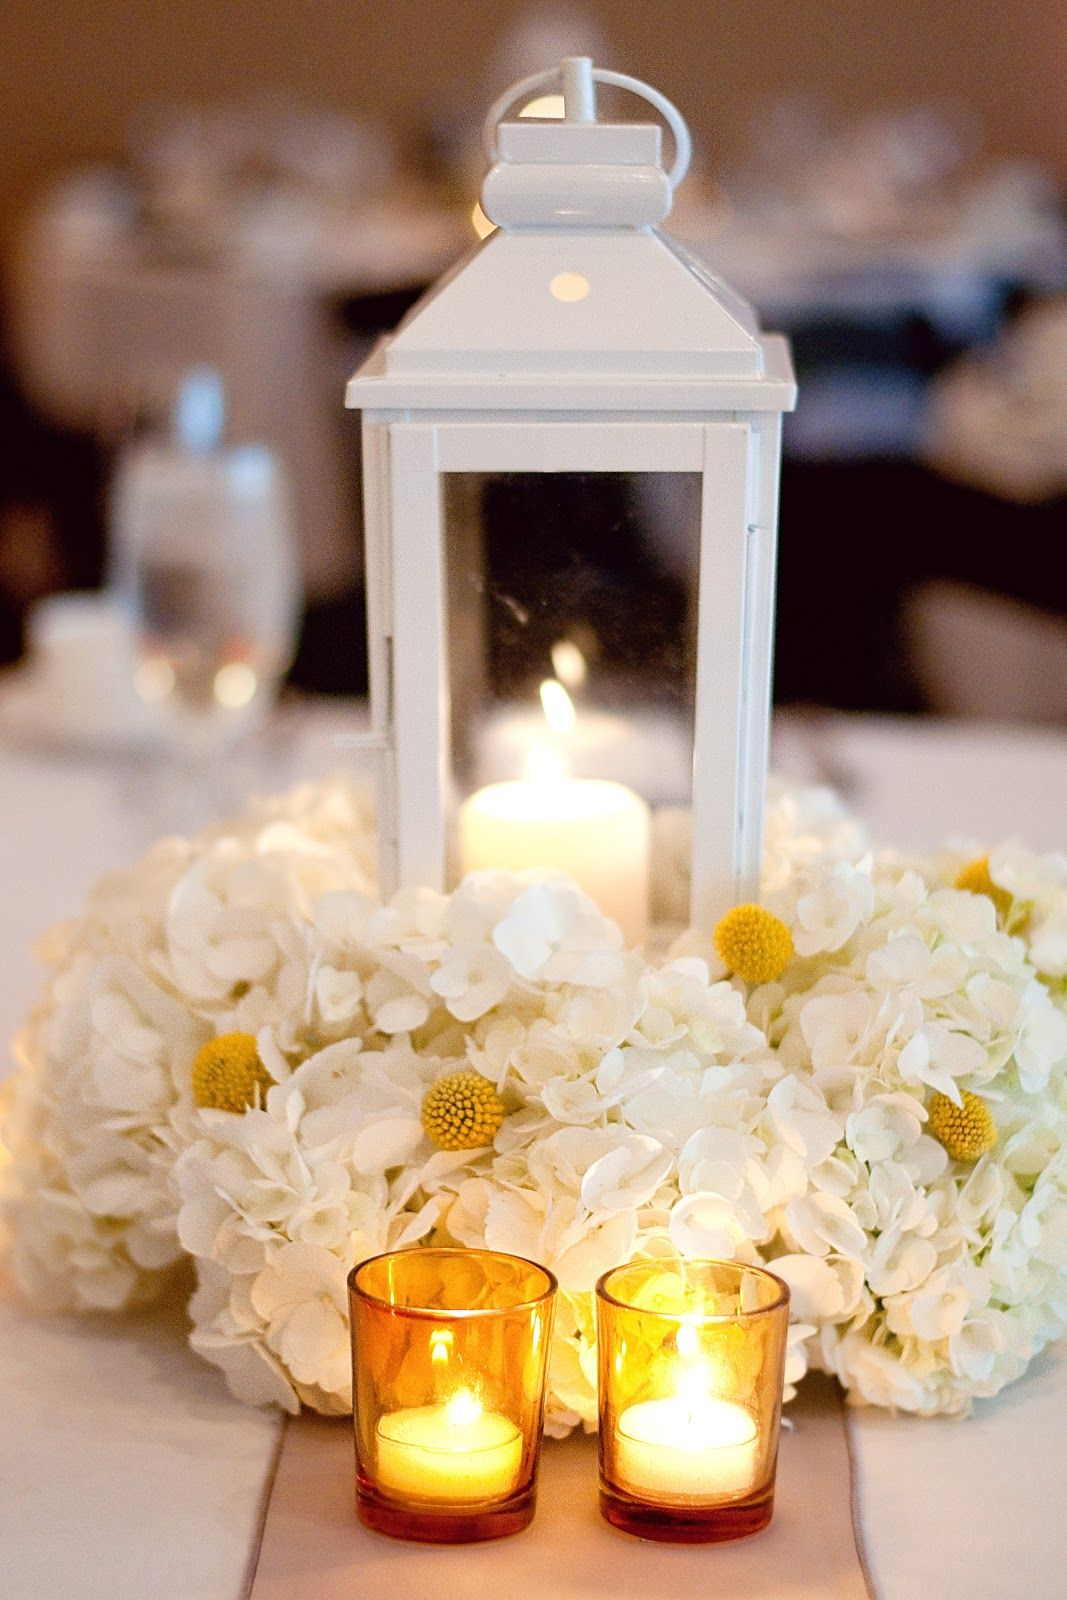 elegant decorations wedding table lights. Accessories, : Contemporary Decoration Design With Simple But Elegant Wedding Centerpieces Using White Iron Candle Lantern Jar Also Wooden Dining Decorations Table Lights H